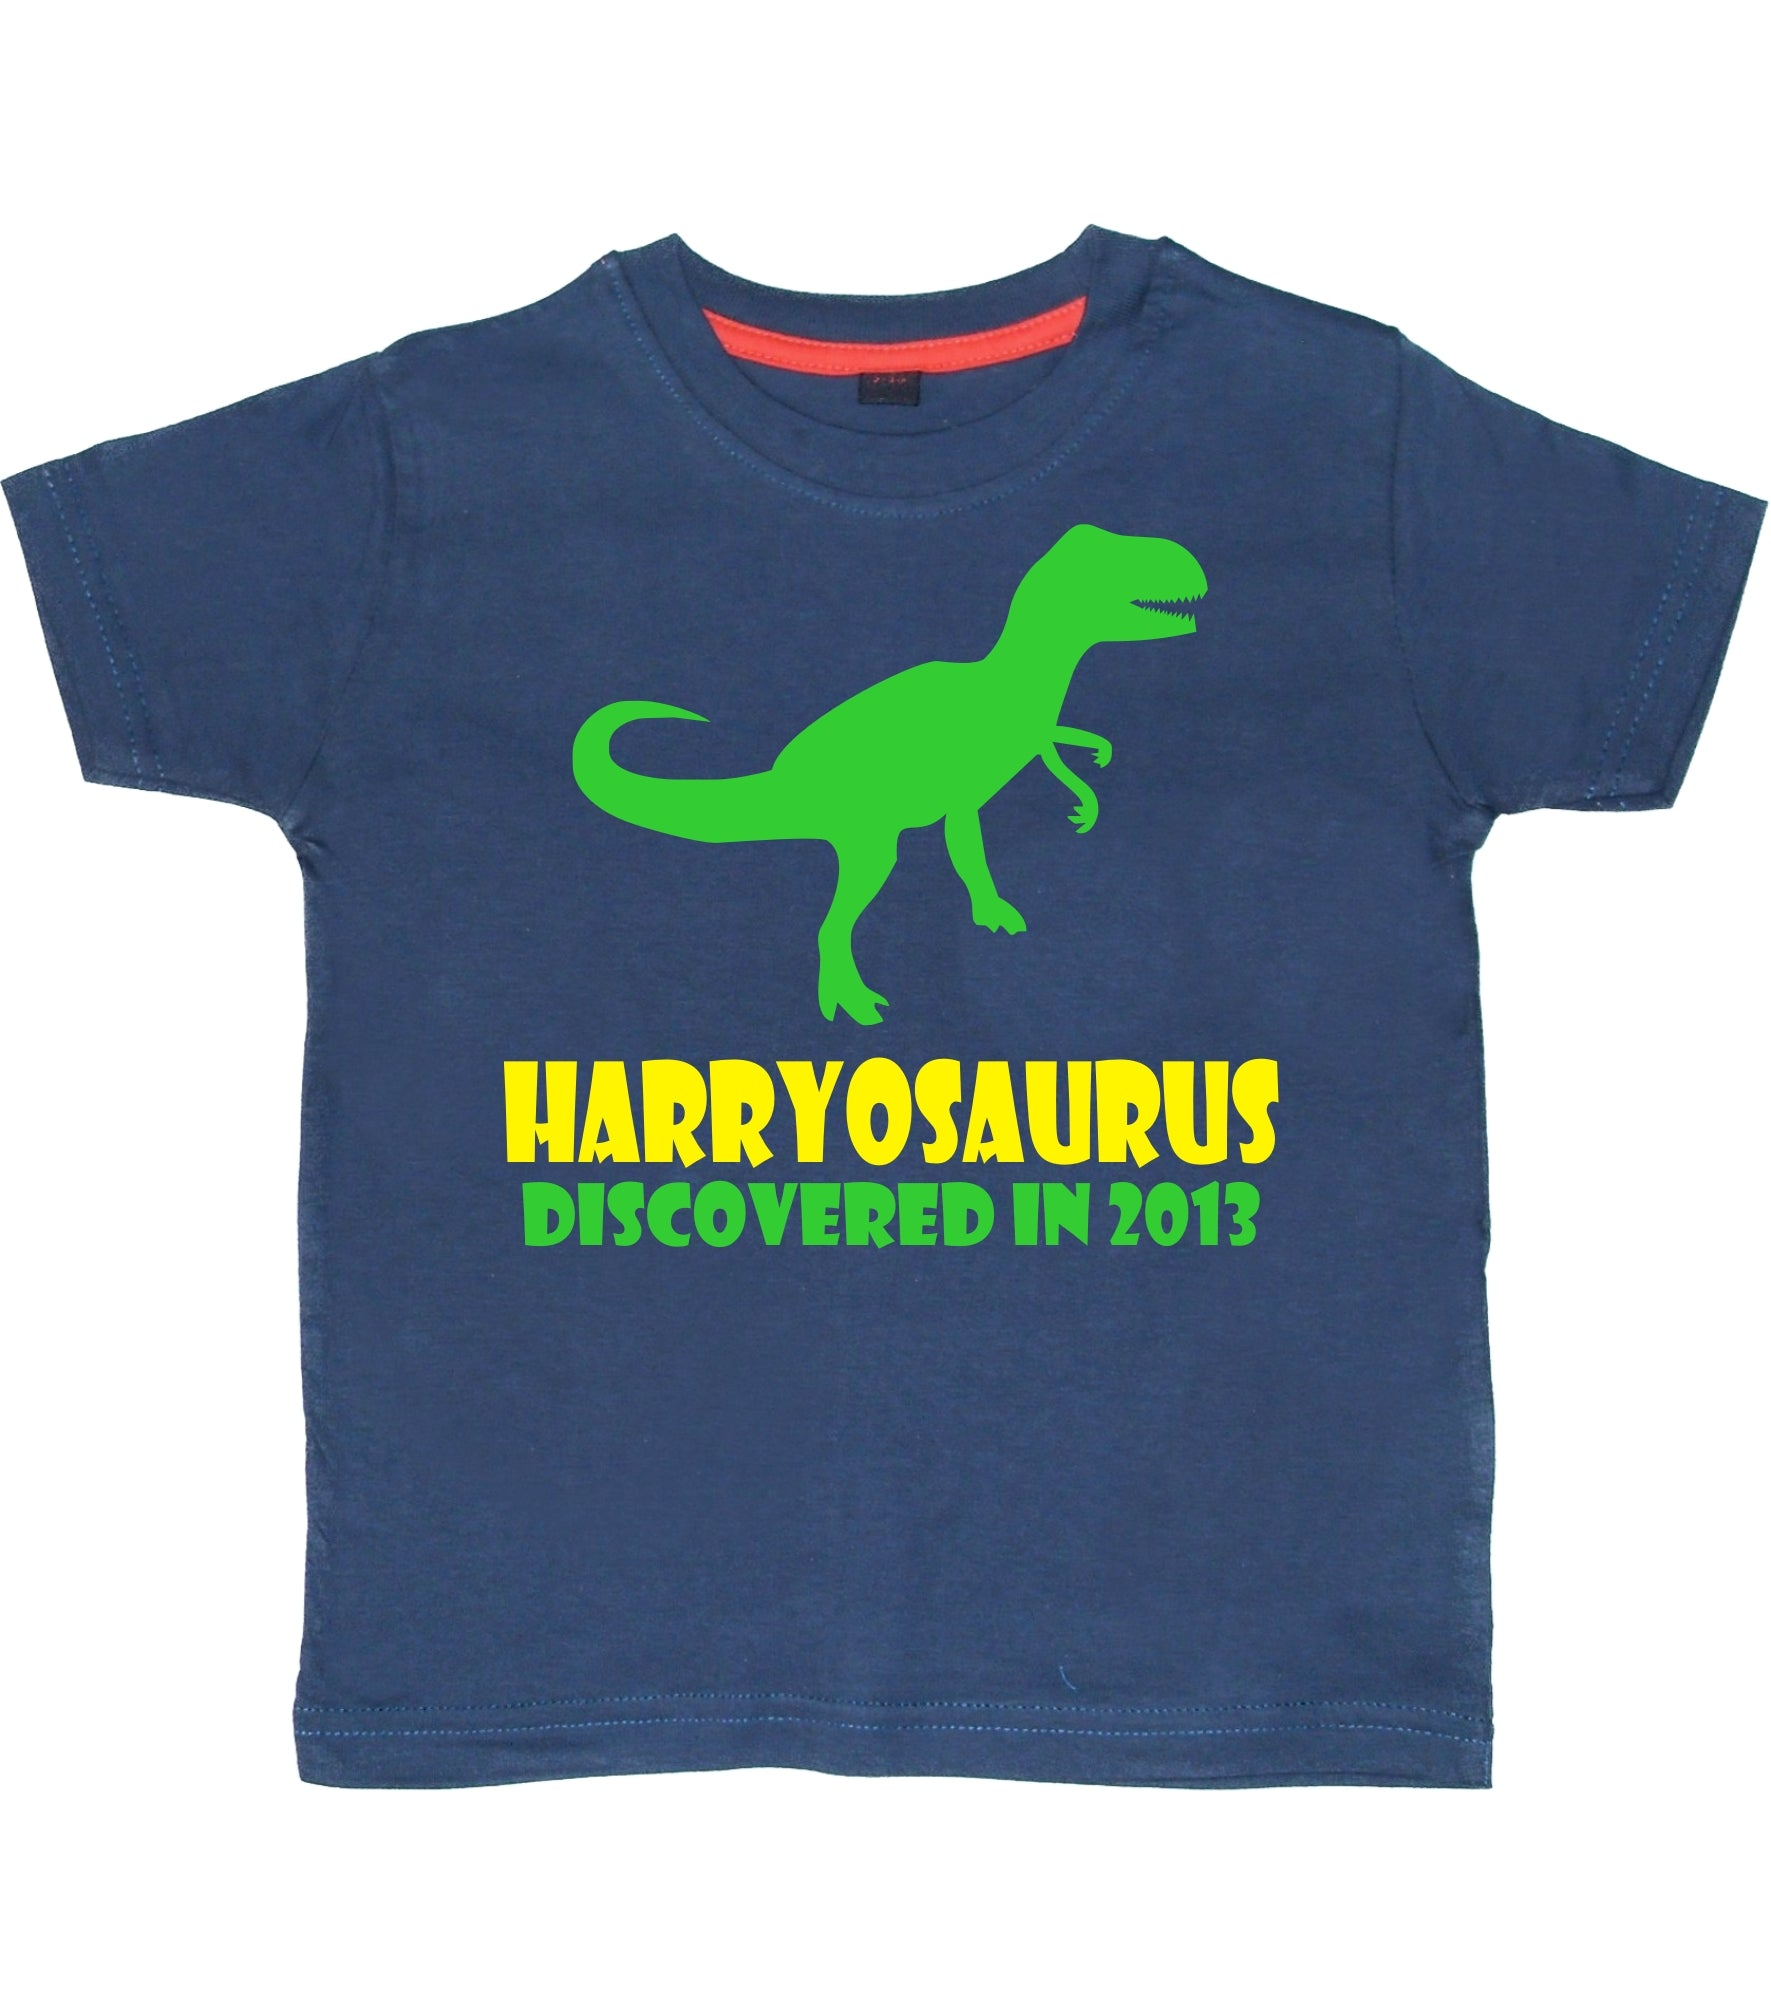 Personalised Name-osaurus Children's T-Shirt with Name and Year